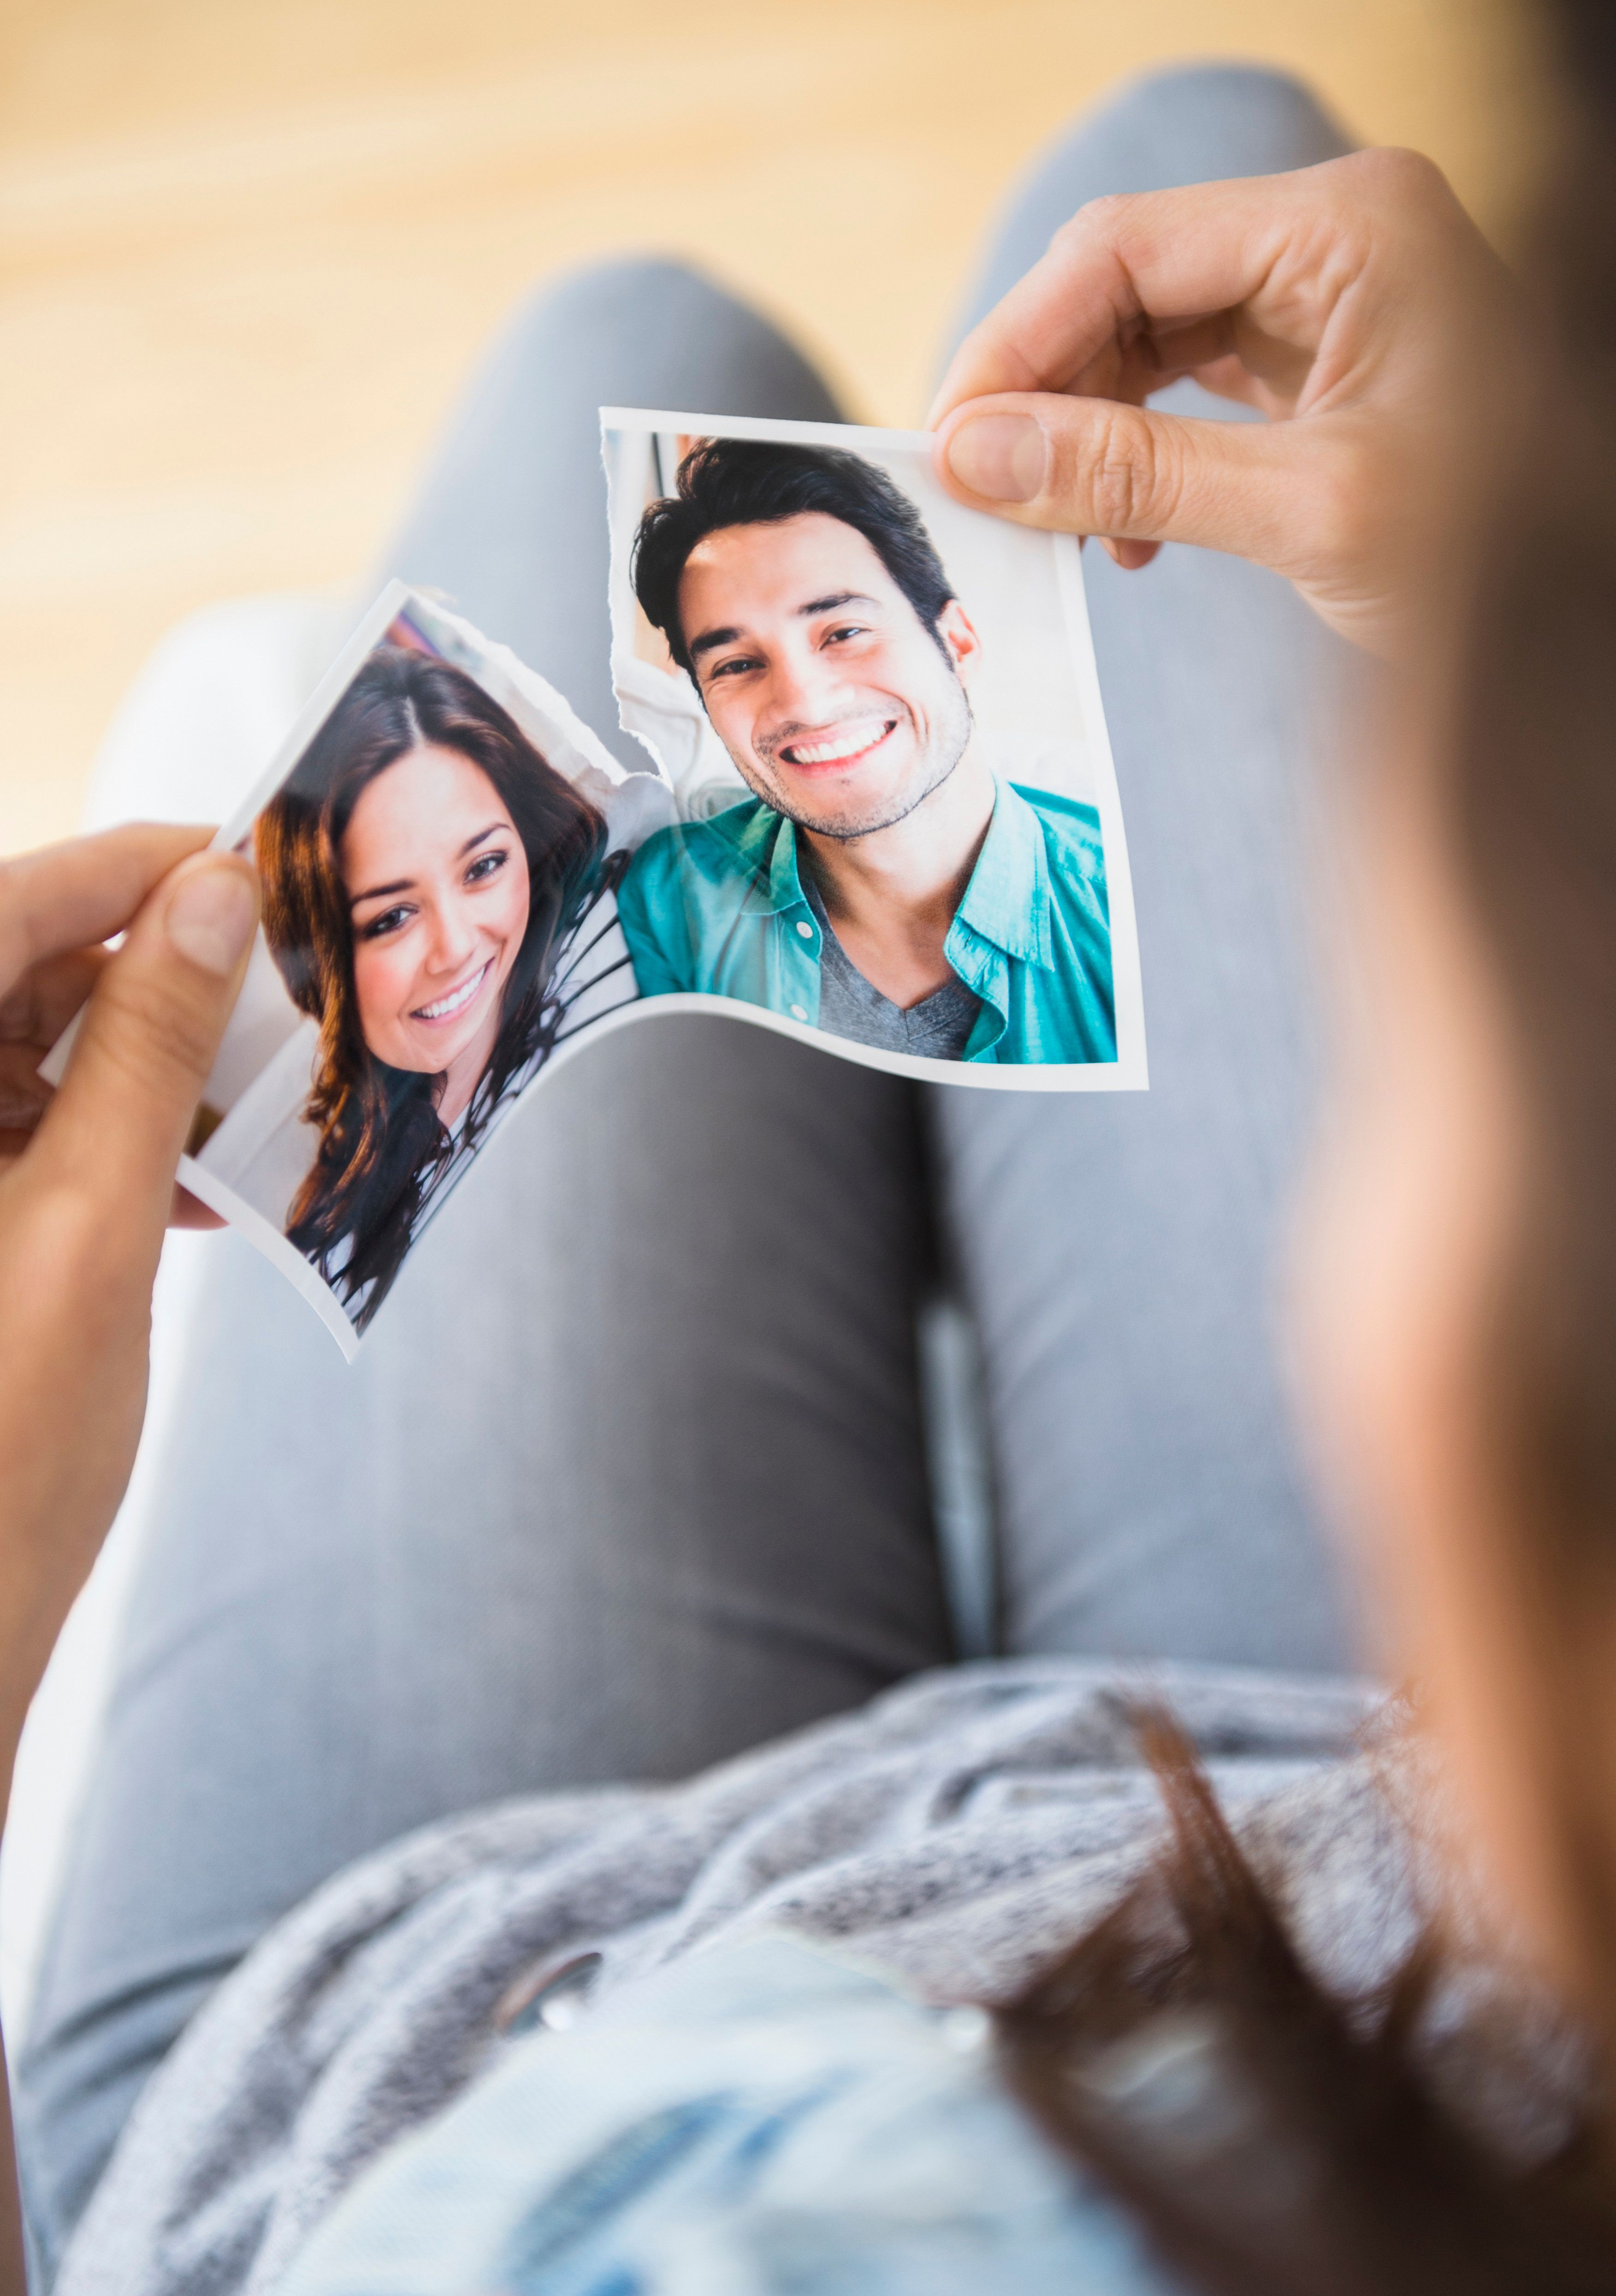 Experts share the signs you may not be ready to pursue a friendship with a former partner.